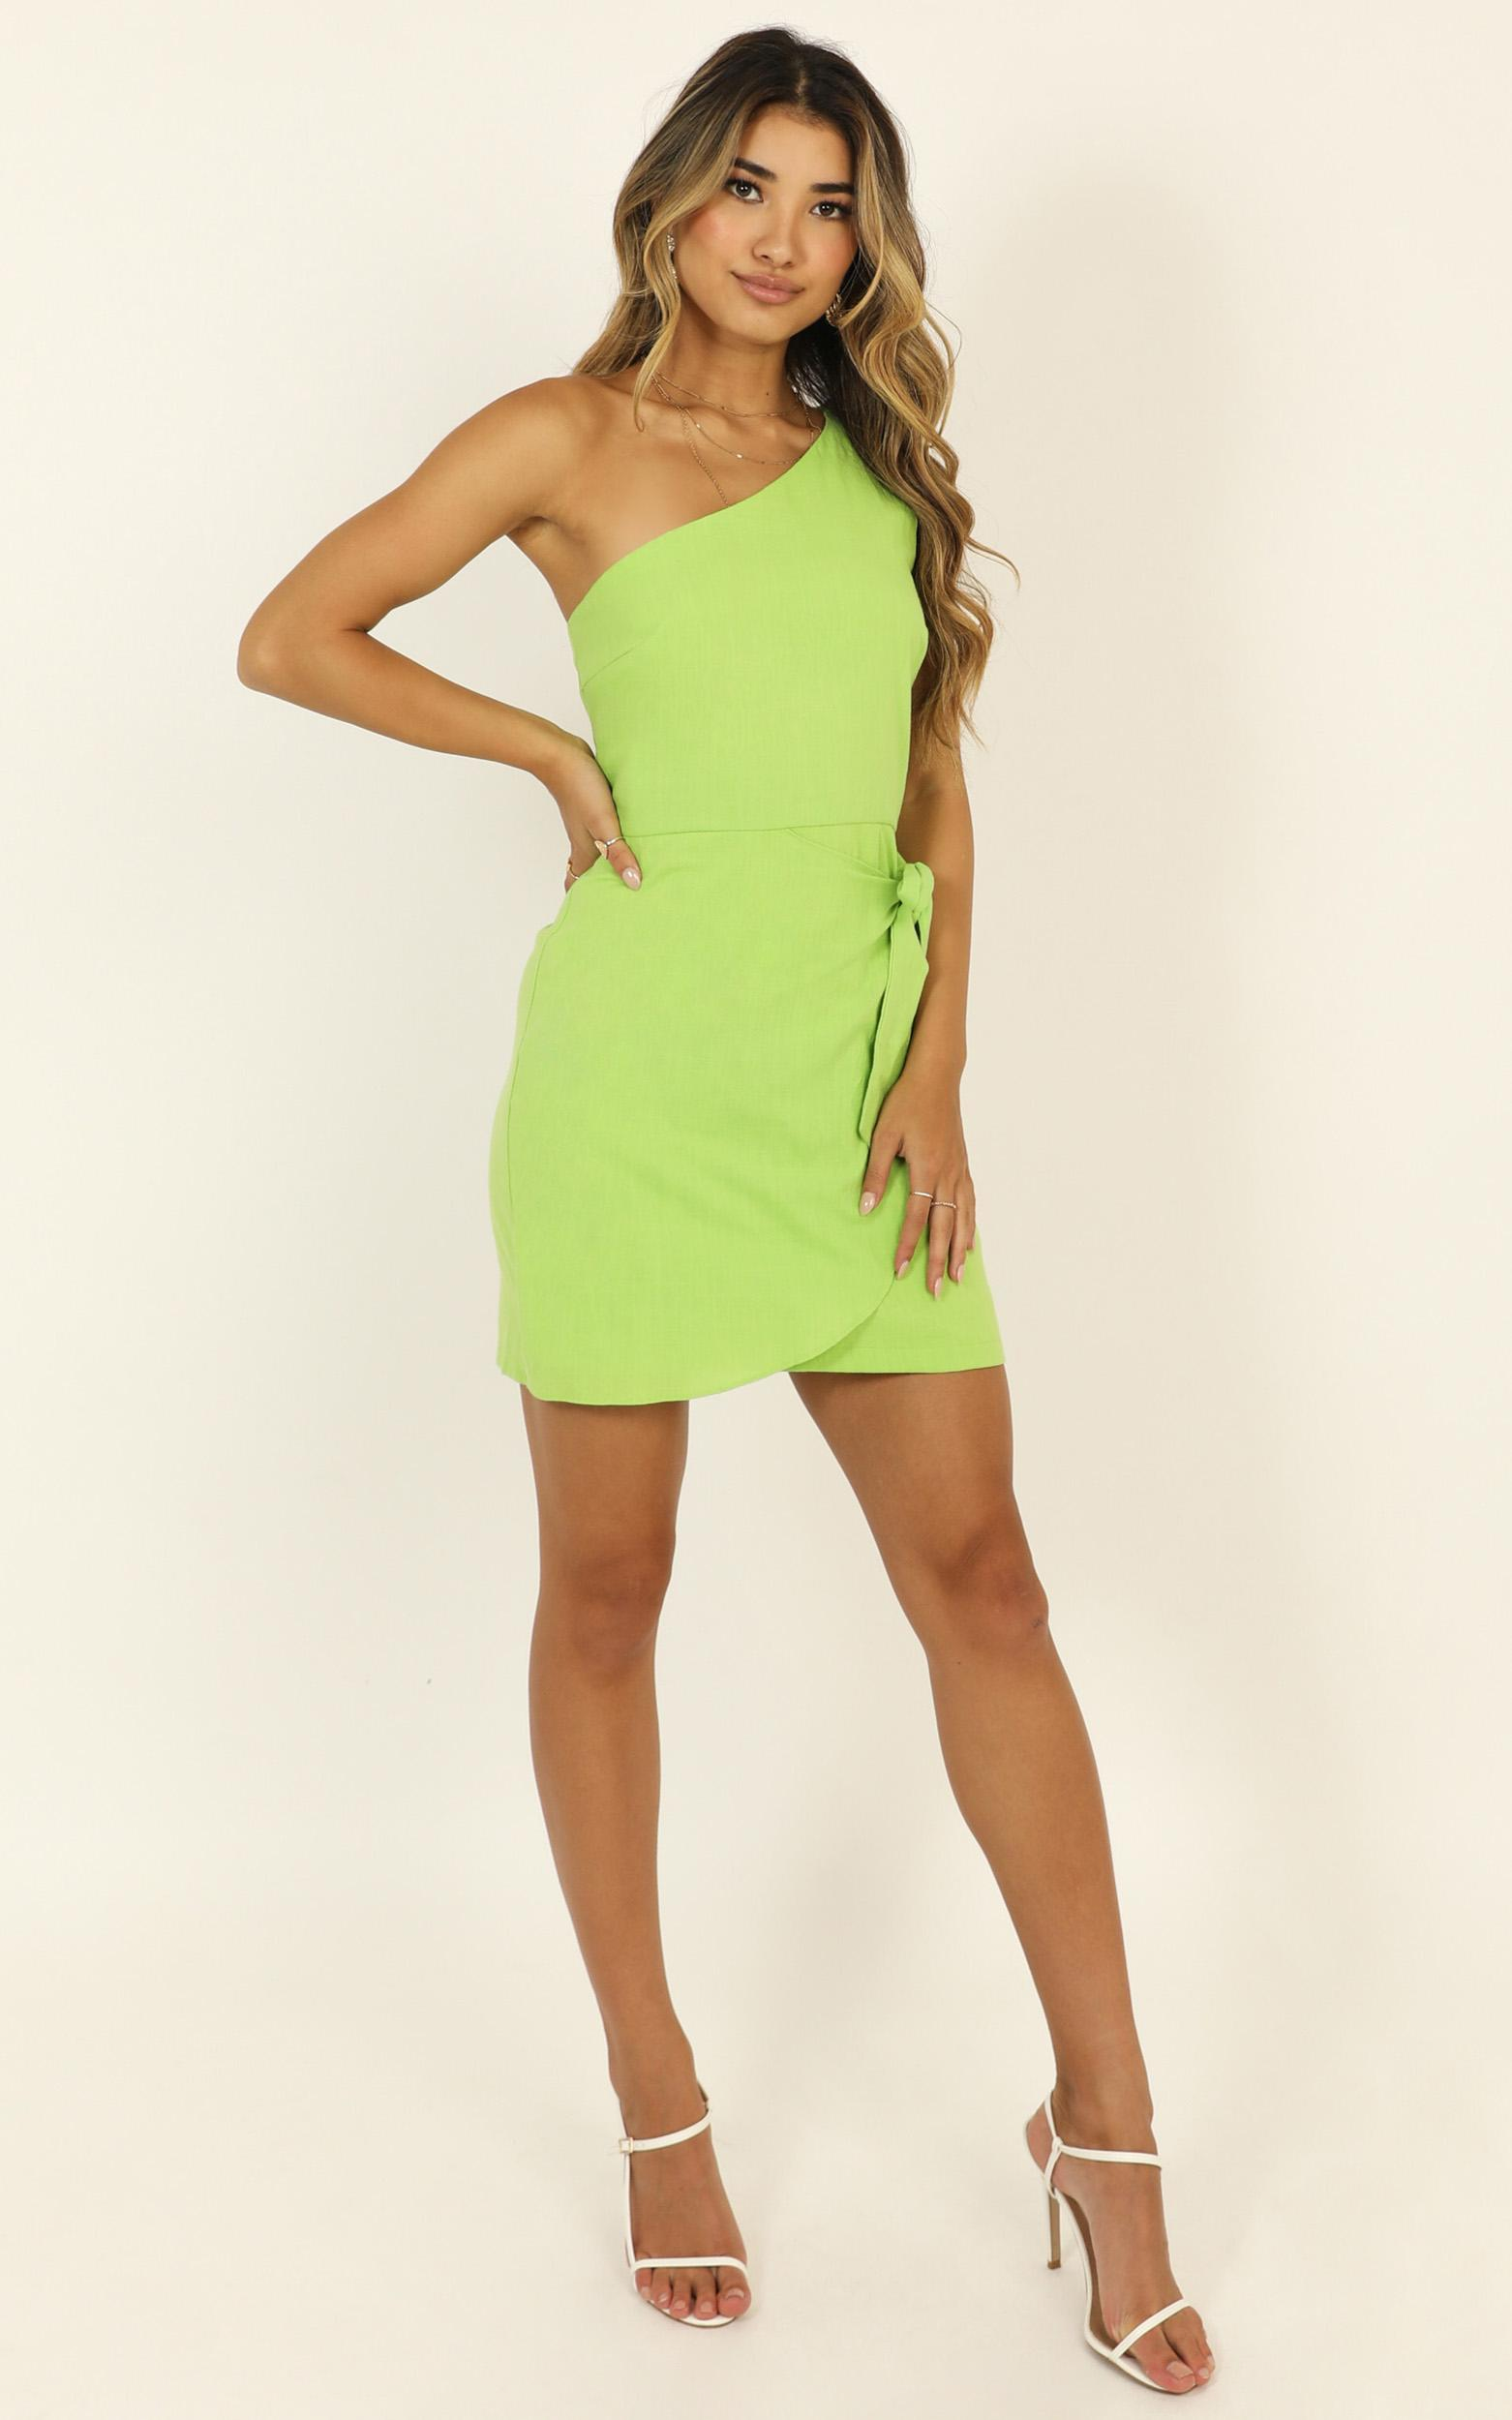 Keeping It Together Dress in Green Linen Look - 18, GRN5, hi-res image number null